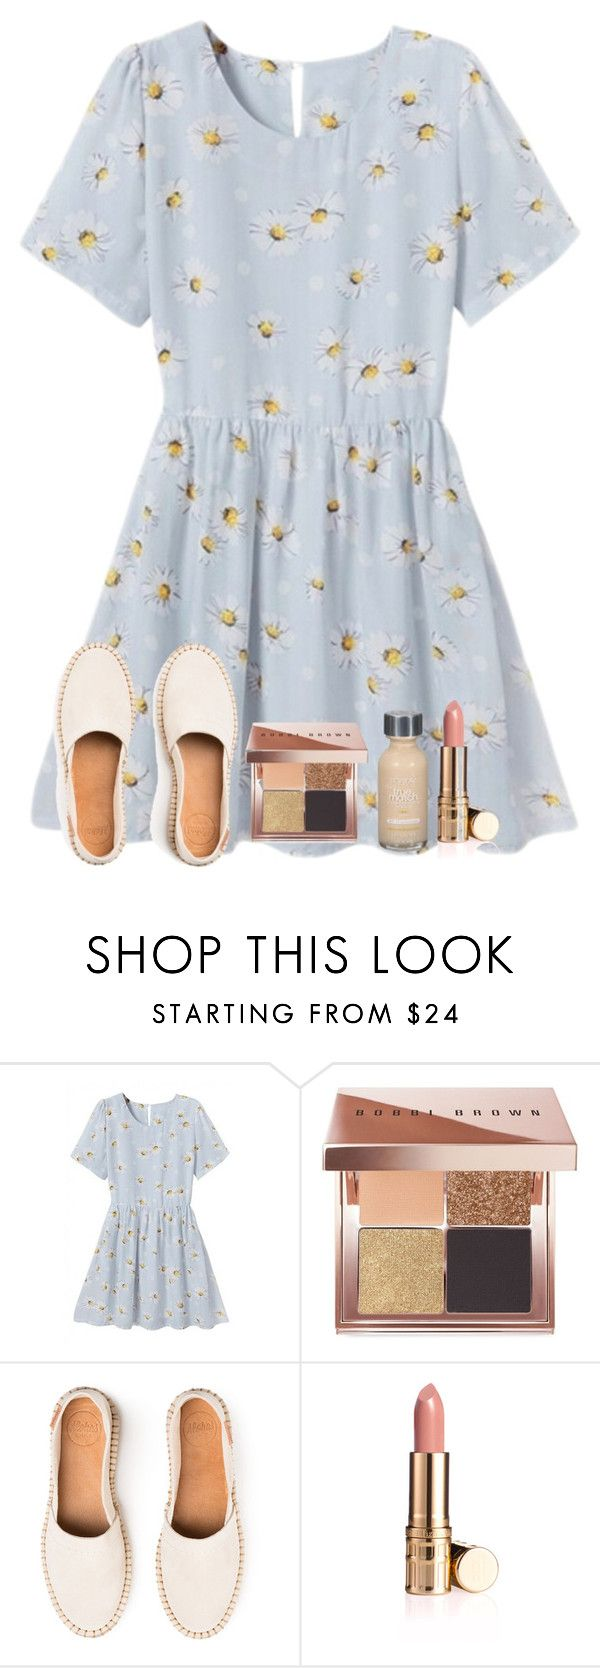 """""""Summer picnic outfit"""" by elisabethturner ❤ liked on Polyvore featuring WithChic, Bobbi Brown Cosmetics, Elizabeth Arden and L'Oréal Paris"""